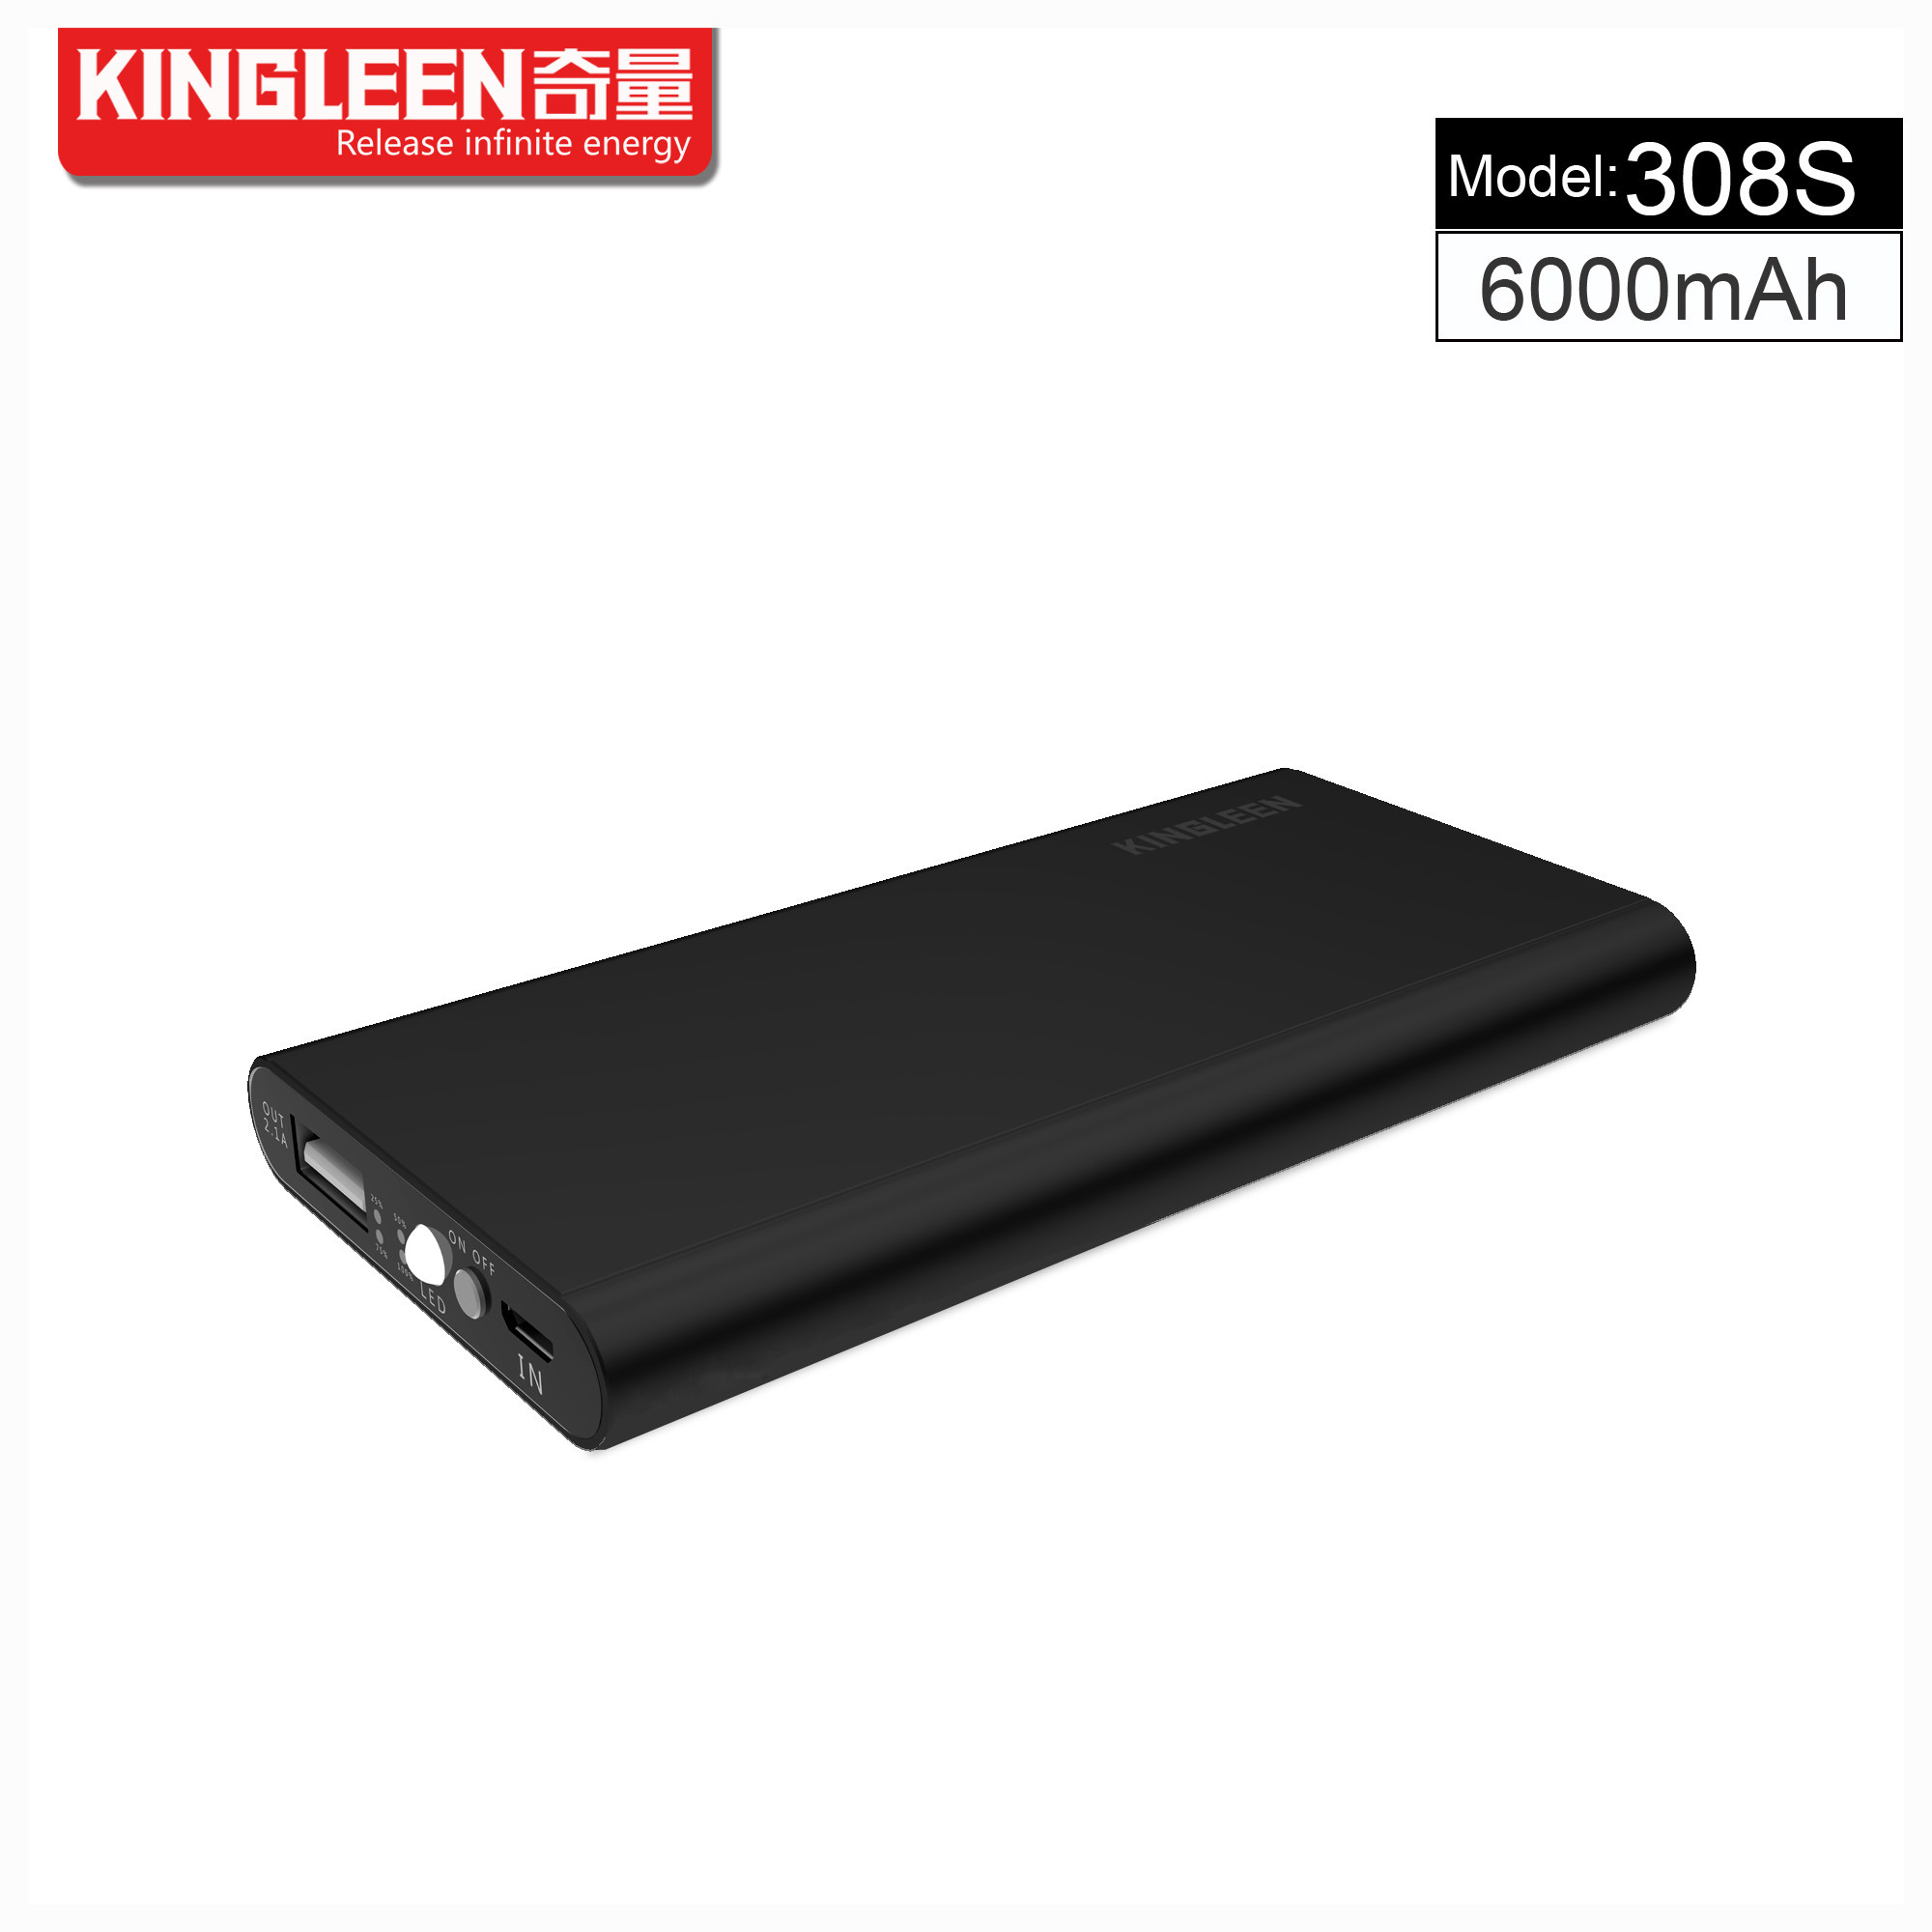 Kingleen Model C308s Power Bank 6000mAh Single USB 1A Output Factory Direct Sale